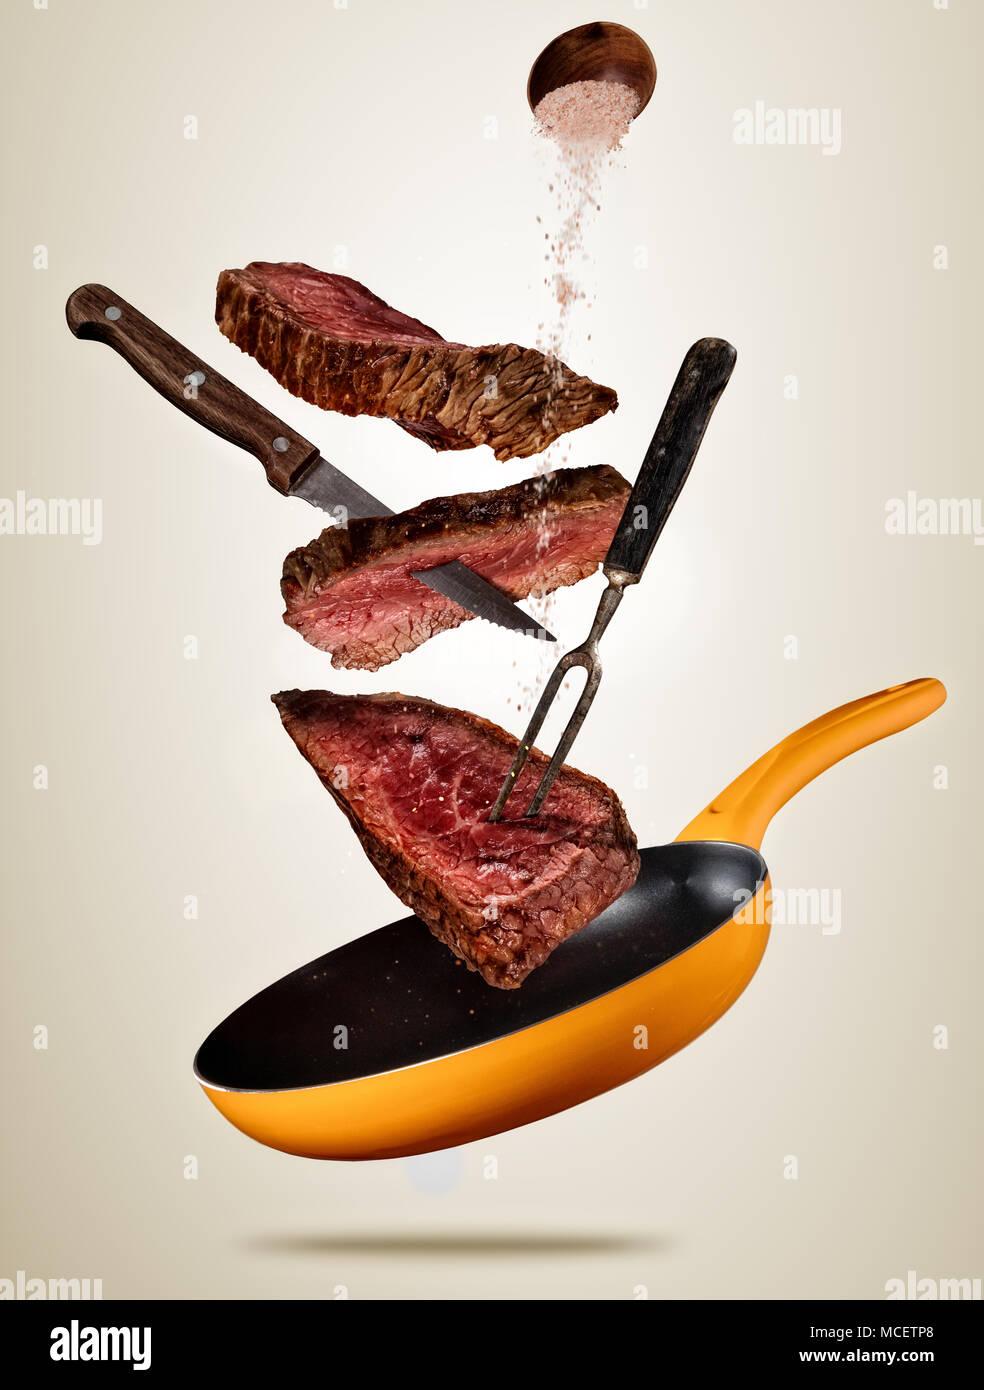 Flying pieces of beef steaks from pan, isolated on colored background. Concept of flying food, very high resolution image Stock Photo